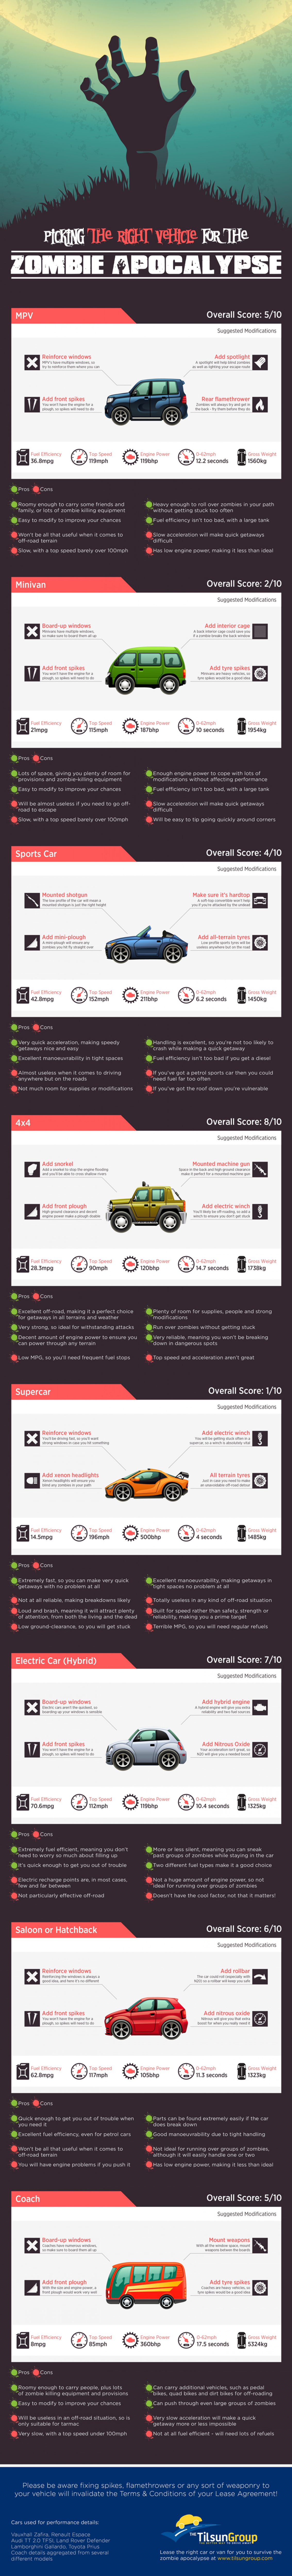 The Best Vehicles for the Zombie Apocalypse Infographic